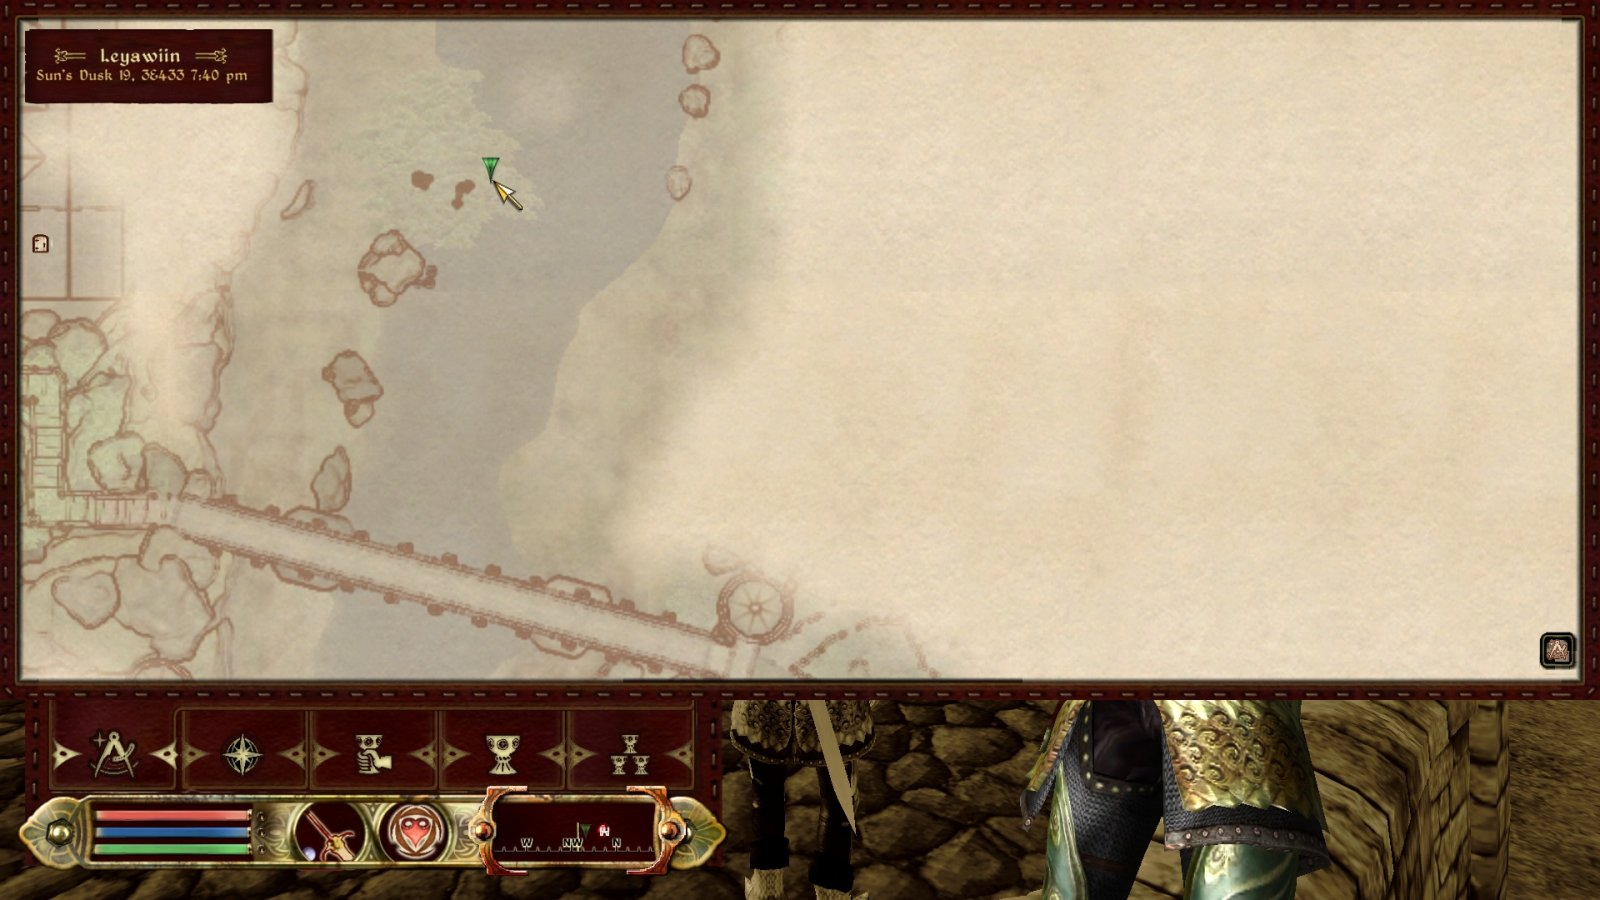 ScreenShot4.jpg